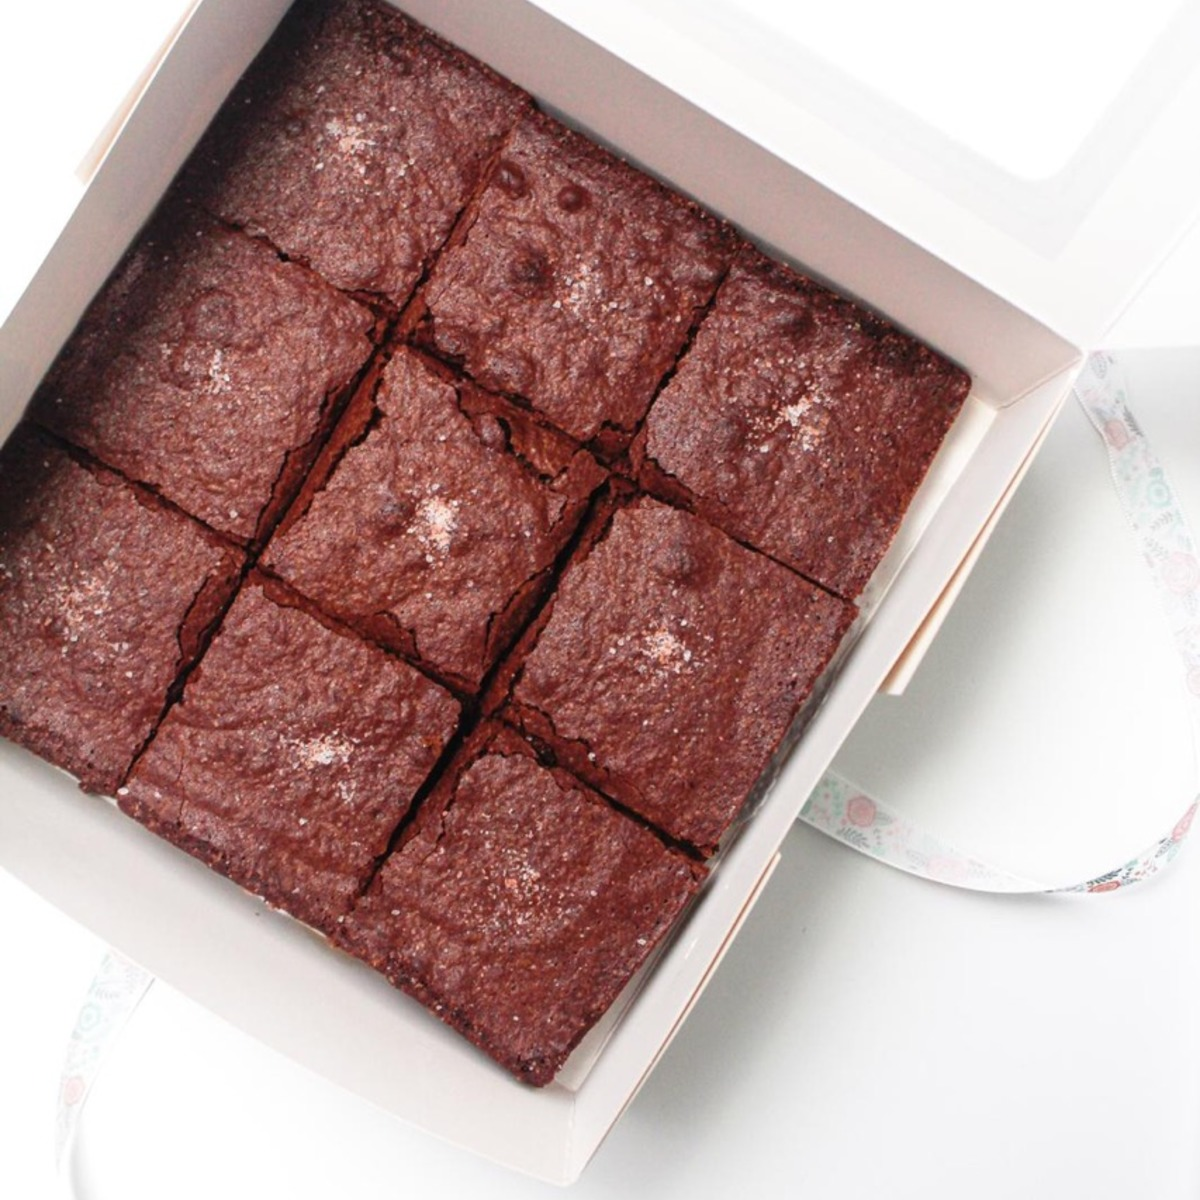 Stand a chance to win brownies from Lexygracebakes!